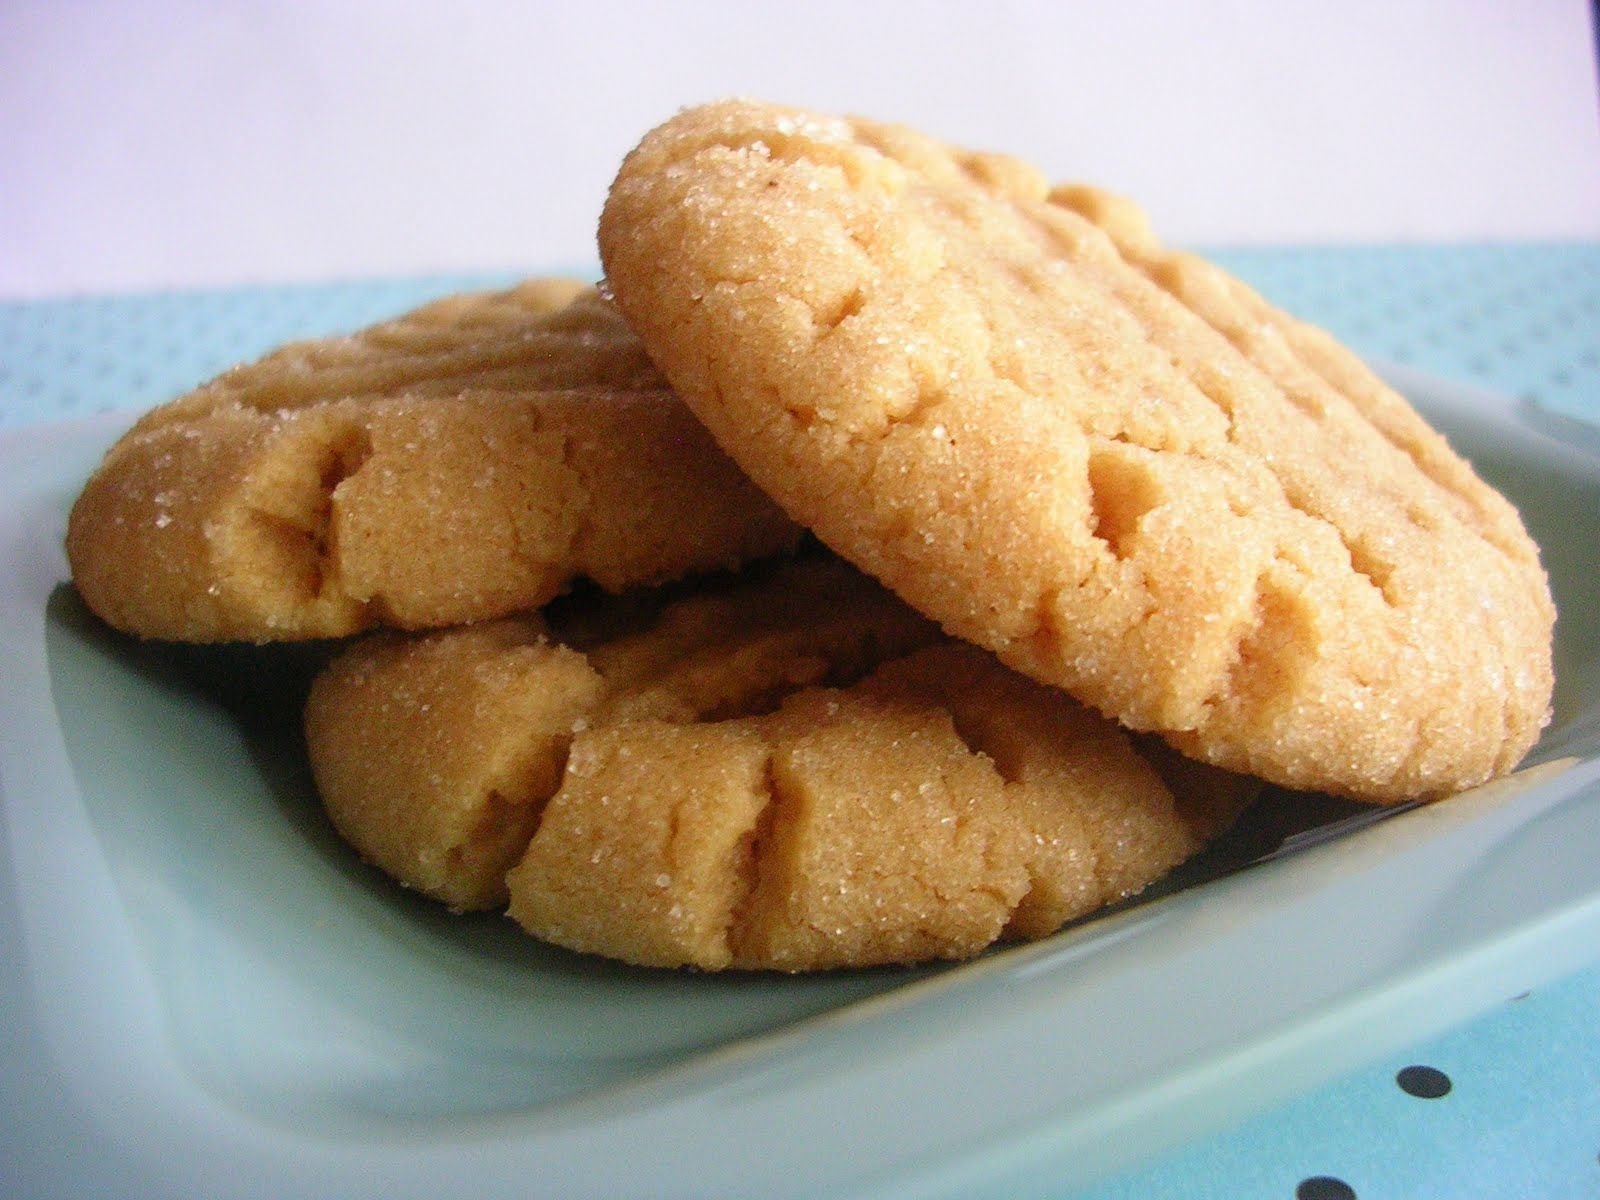 Baked peanut butter cookie recipe